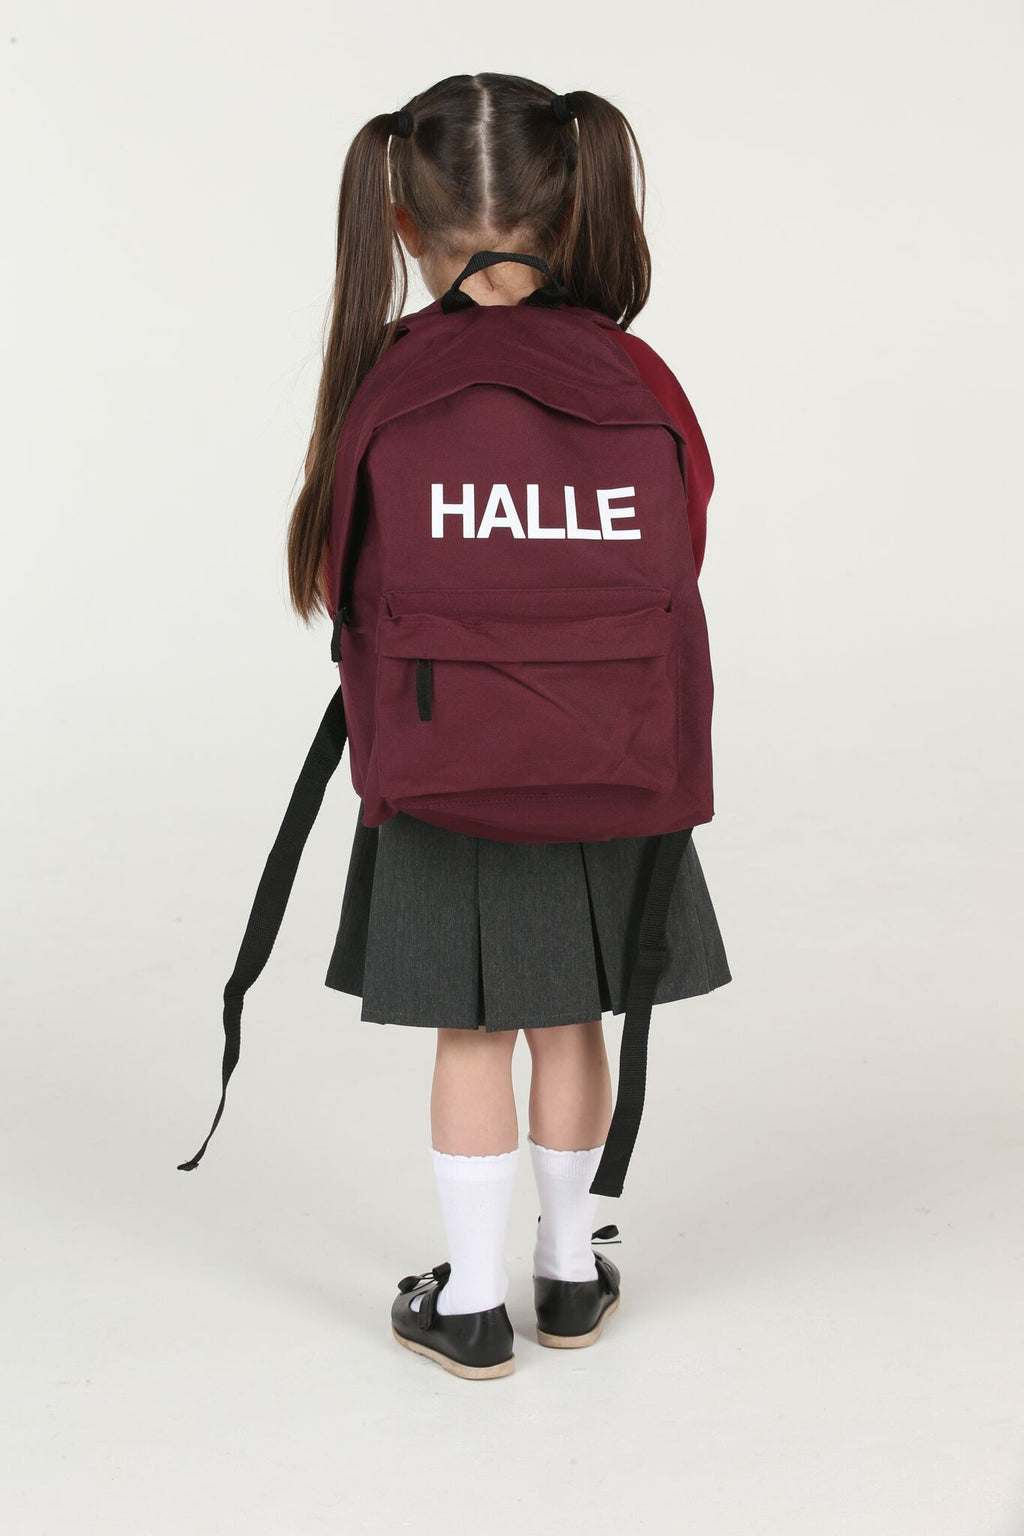 Personalised Burgundy School Backpack - Mini Kings & Queens